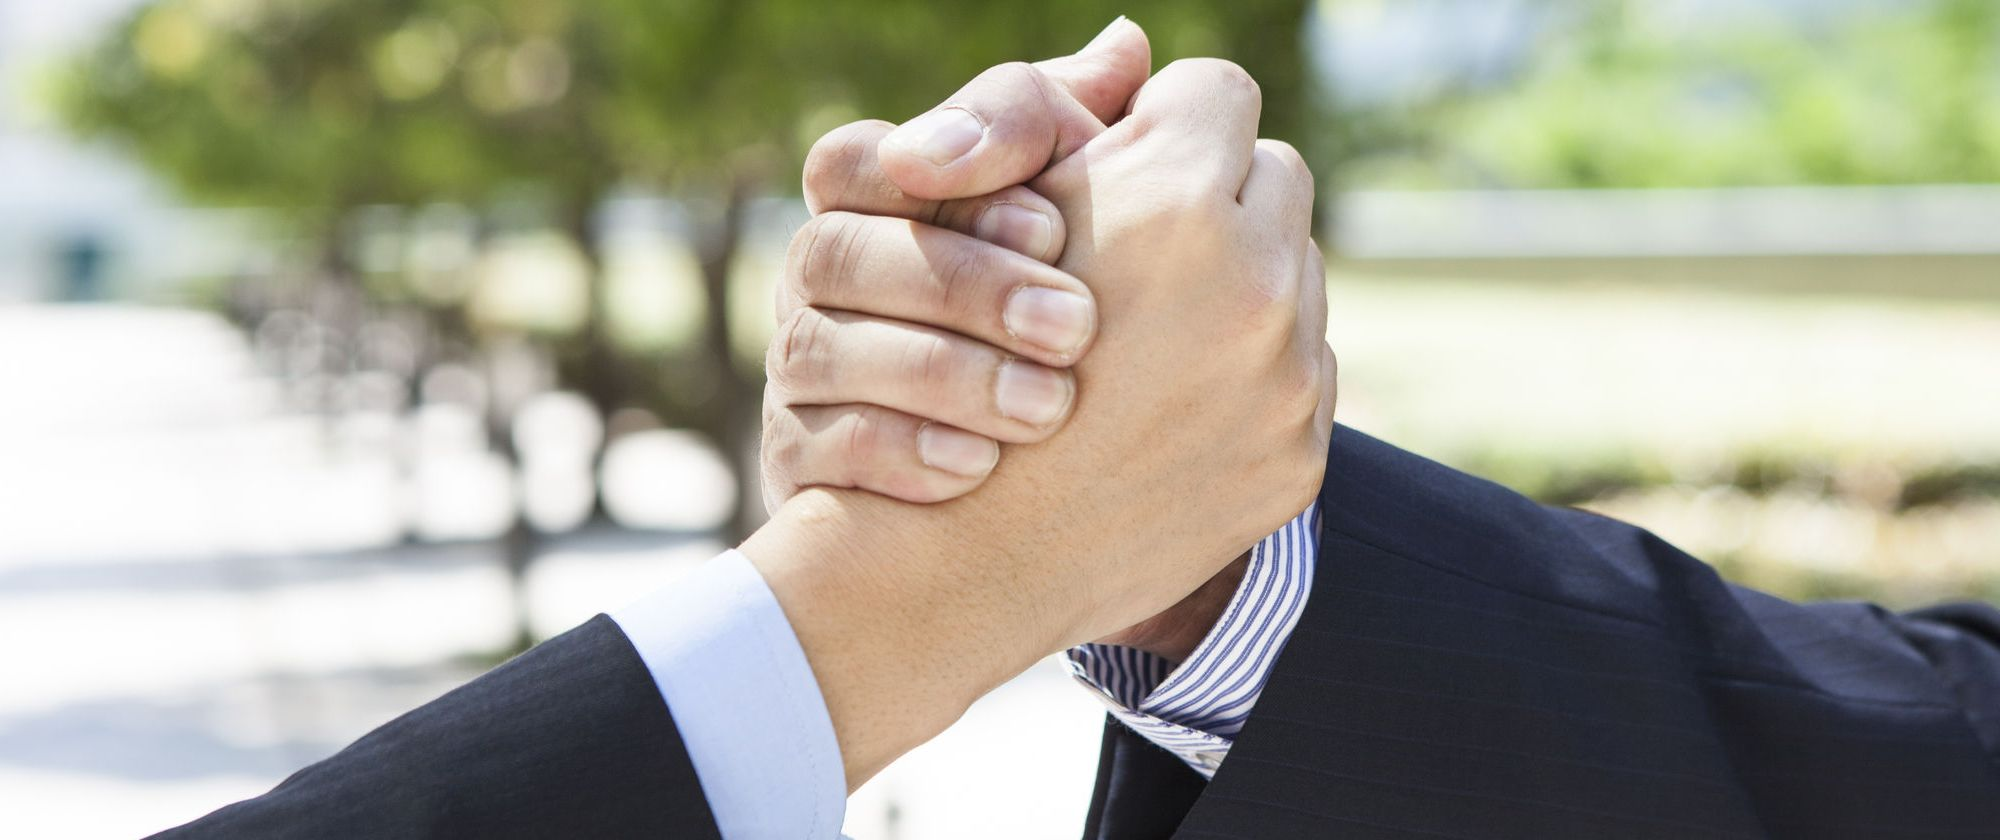 49819413 - business people shaking hands